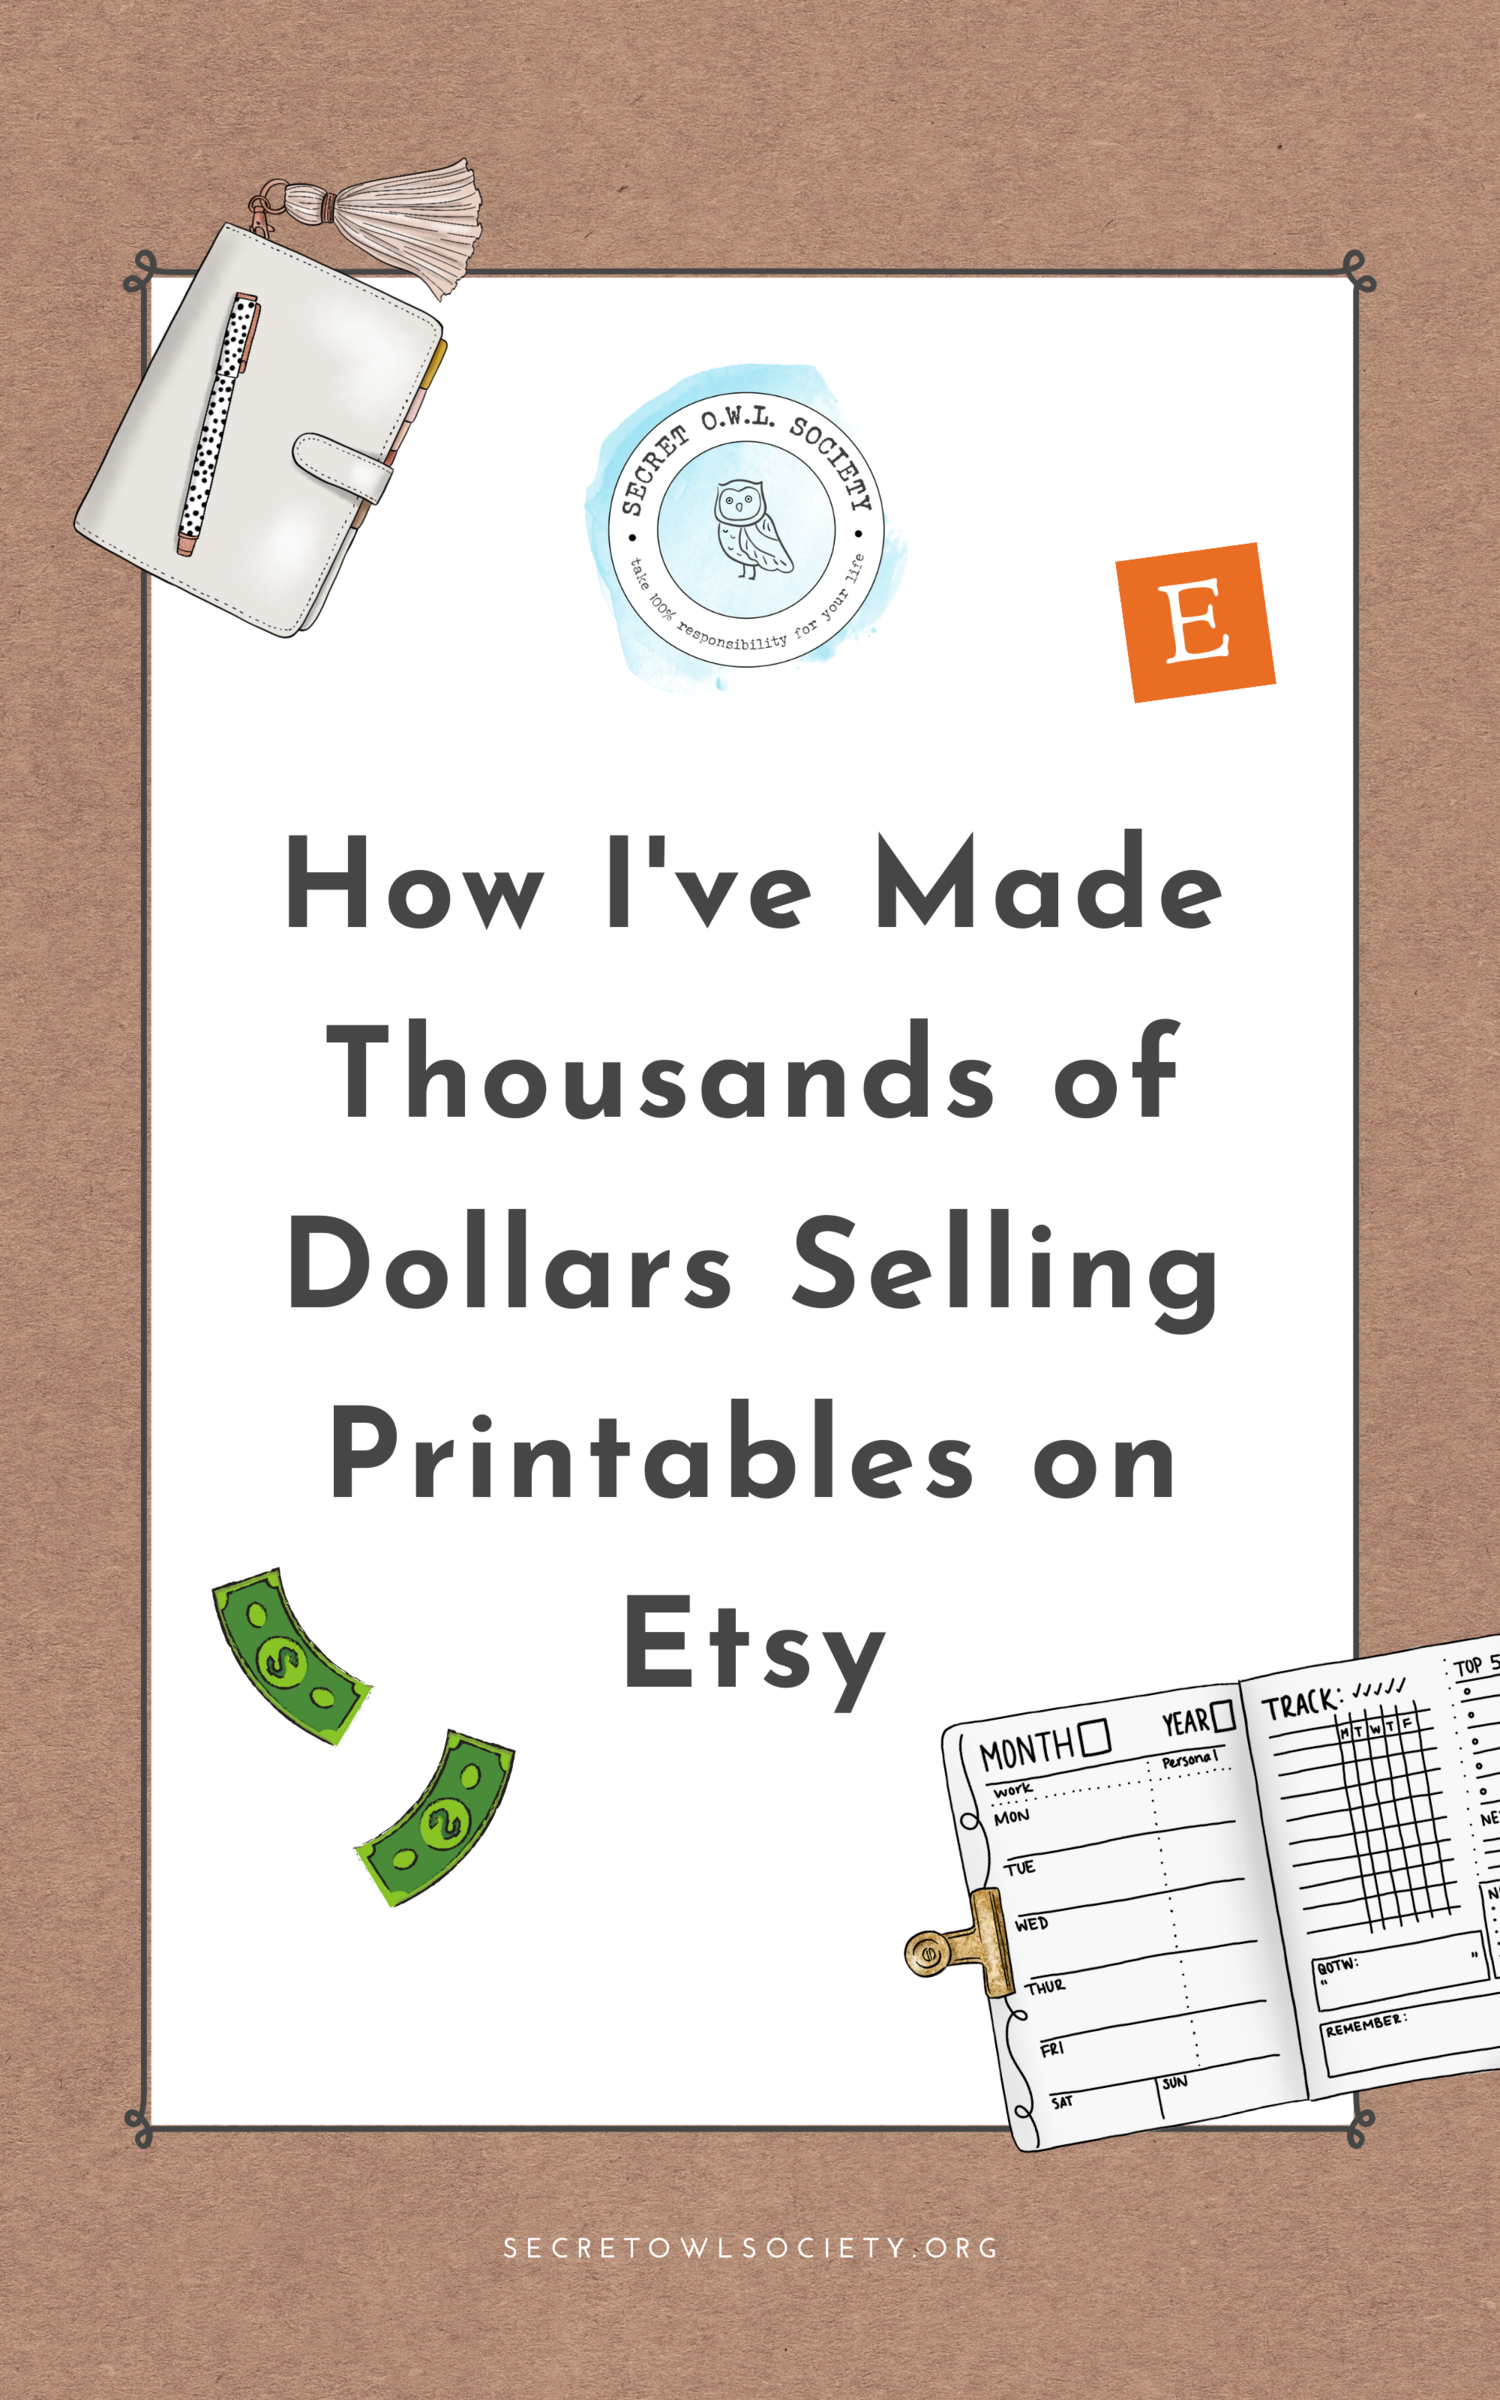 c89bd50a4 How I Made Over $30,000 Selling Printables on Etsy — Secret O.W.L. ...